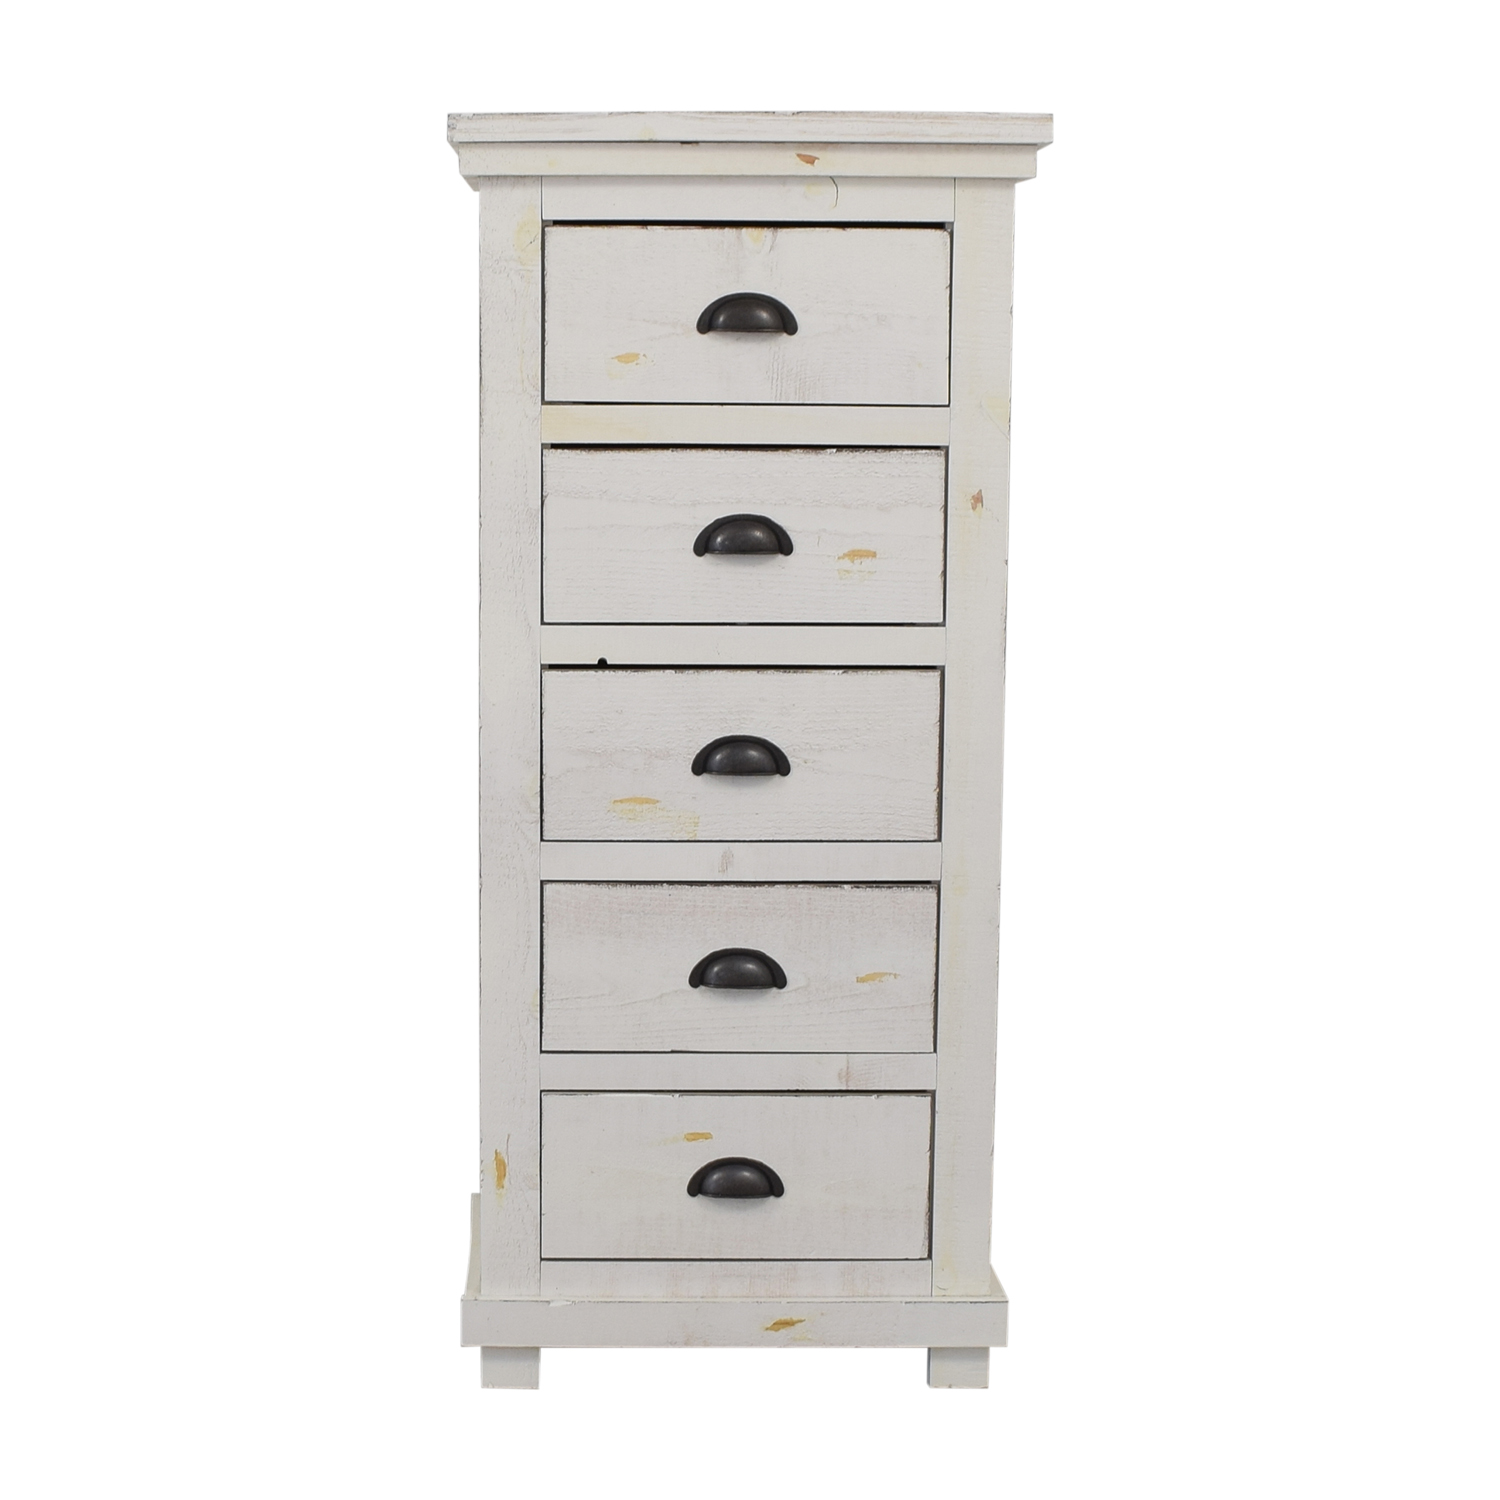 Wayfair Wayfair Distressed White Five-Drawer Lingerie Chest for sale